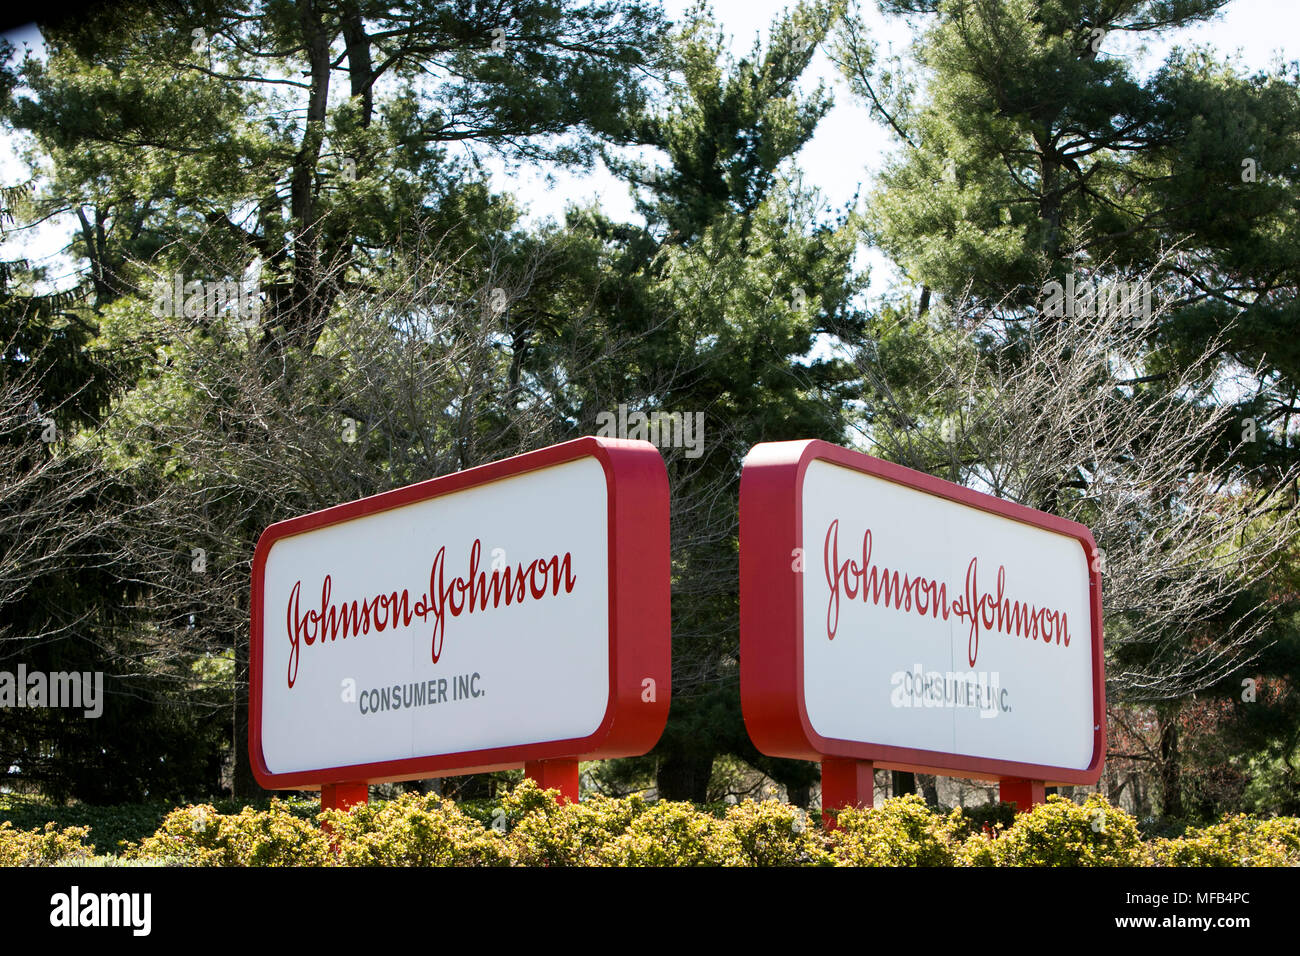 A logo sign outside of a facility occupied by the Johnson & Johnson consumer division in Fort Washington, Pennsylvania on April 22, 2018. - Stock Image